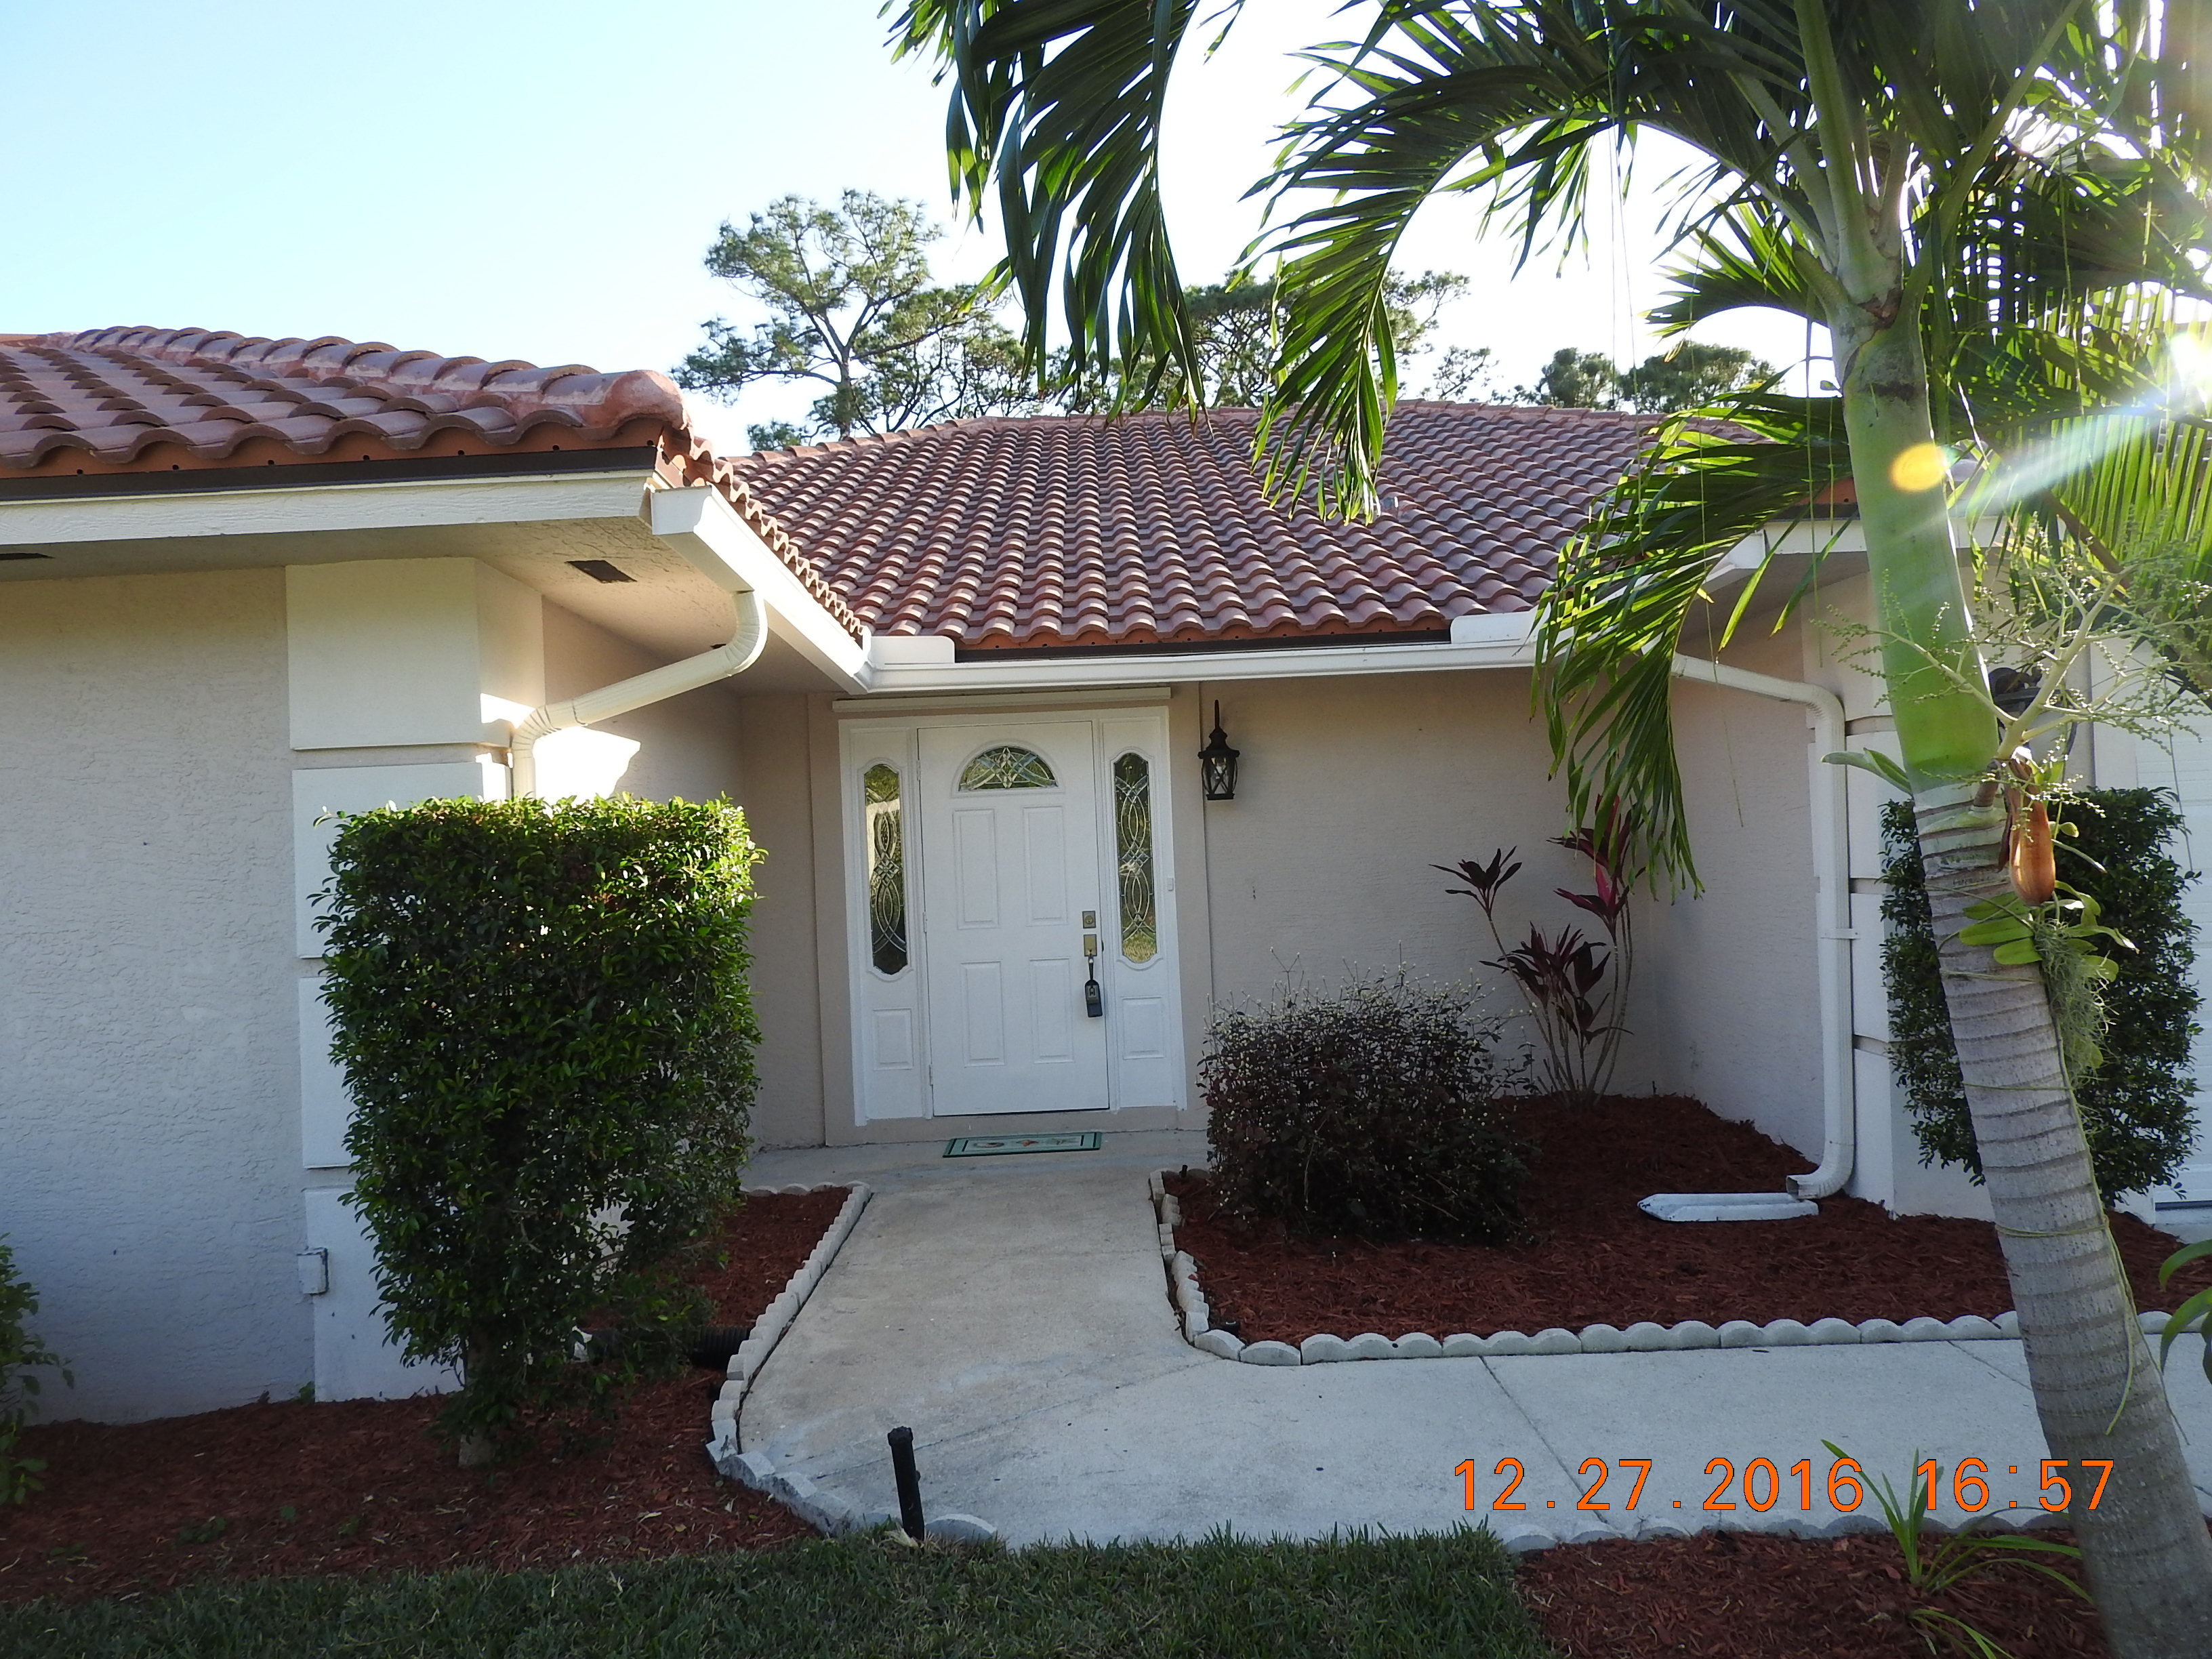 For Rent In Palm Beach Gardens A Haven For Nature Love